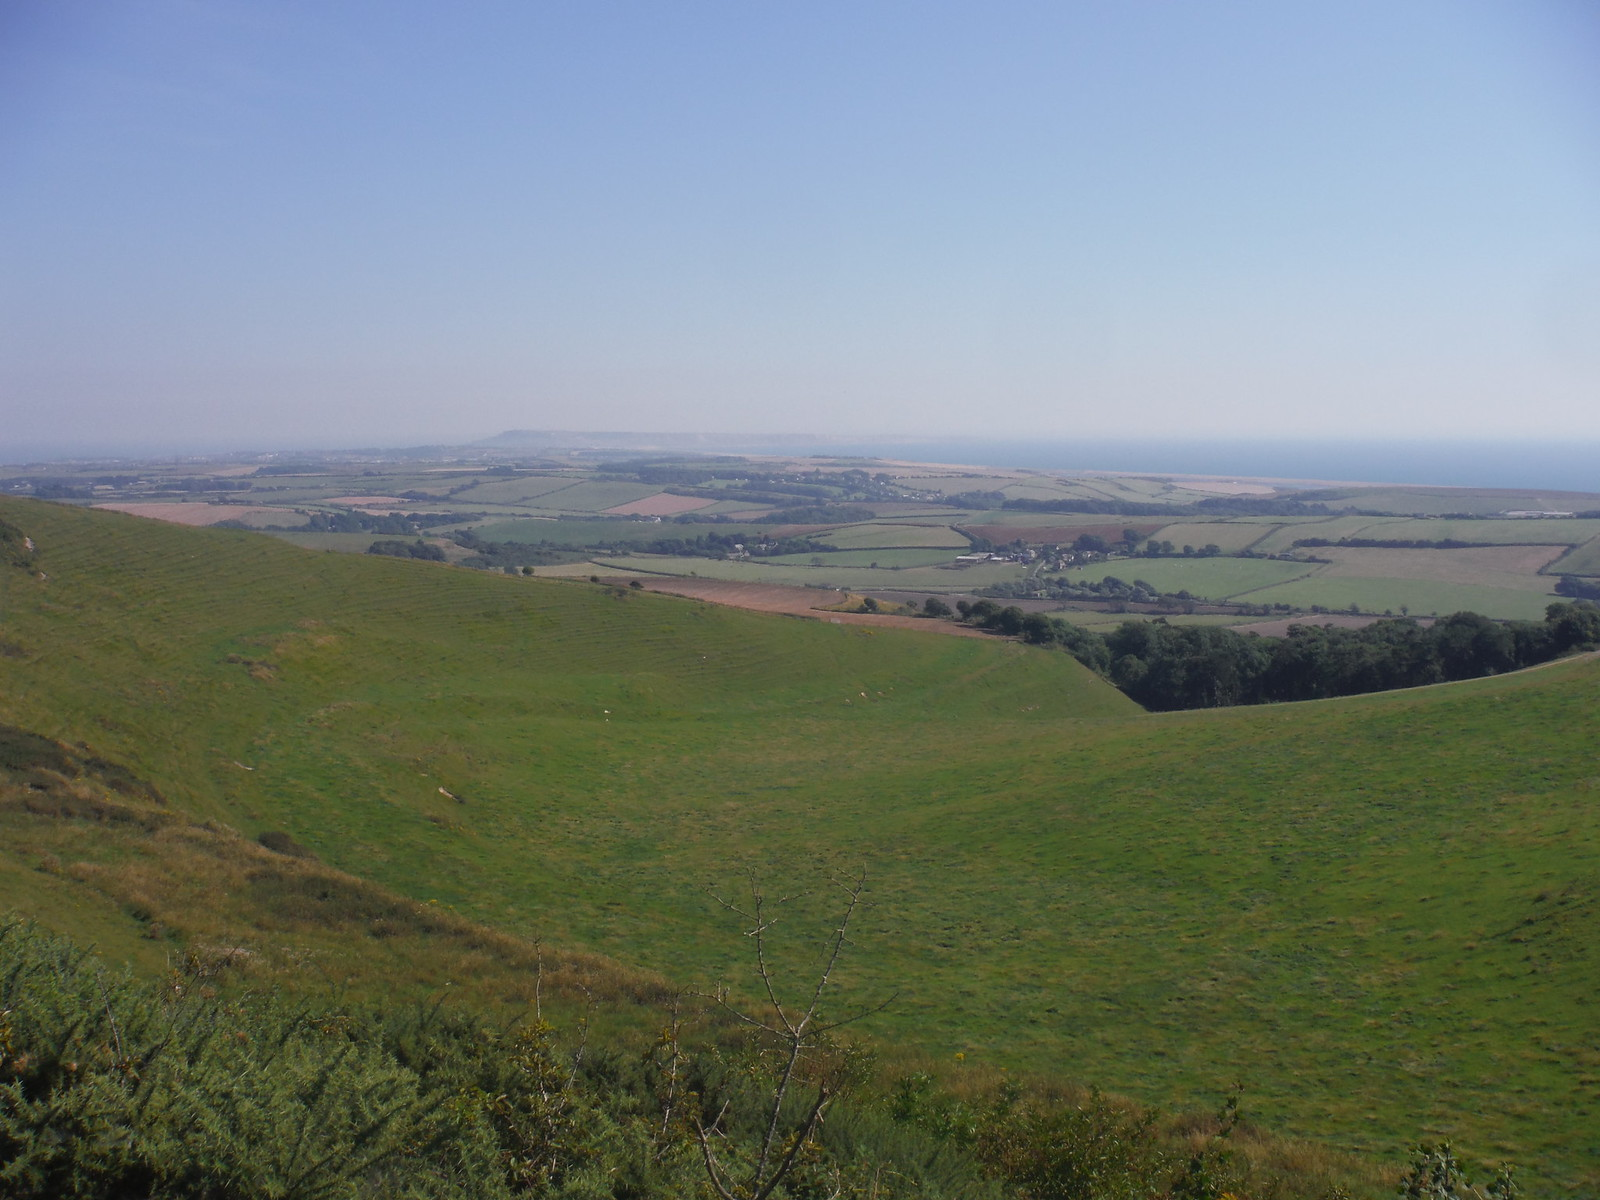 Descent to Portesham with Views of Jurassic Coast SWC Walk 275 Dorchester South Circular or to Portesham (Extension)